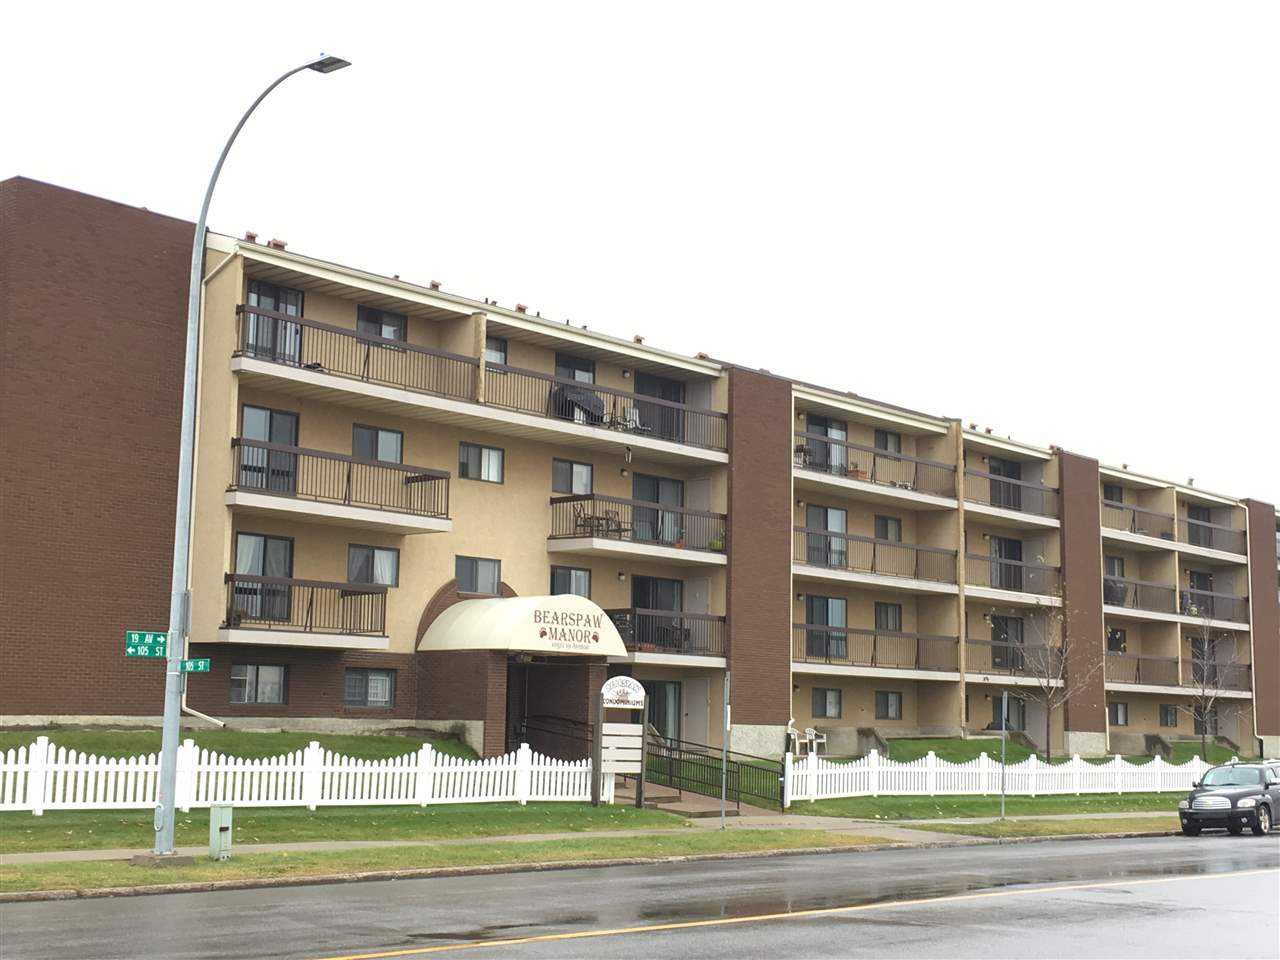 Immaculate! Completely renovated bright and spacious two bedroom with new kitchen, bathrooms, flooring, light fixtures and new paint. Excellent layout with large living room, master bedroom with ensuite; another bedroom, a 4 pieces bathroom and in suite laundry; also huge balcony and a storage unit. Unit come with Underground heated parking, tons of visitor parking around the building and on the street. Bearspaw Manor is located in convenient community of Keheewin,  Situated in a quiet neighbourhood, across from the park. Close to shopping, YMCA with great access to all major driving routes, LRT, buses, professionally managed and extremely well maintained. truly a perfect location for your new home!